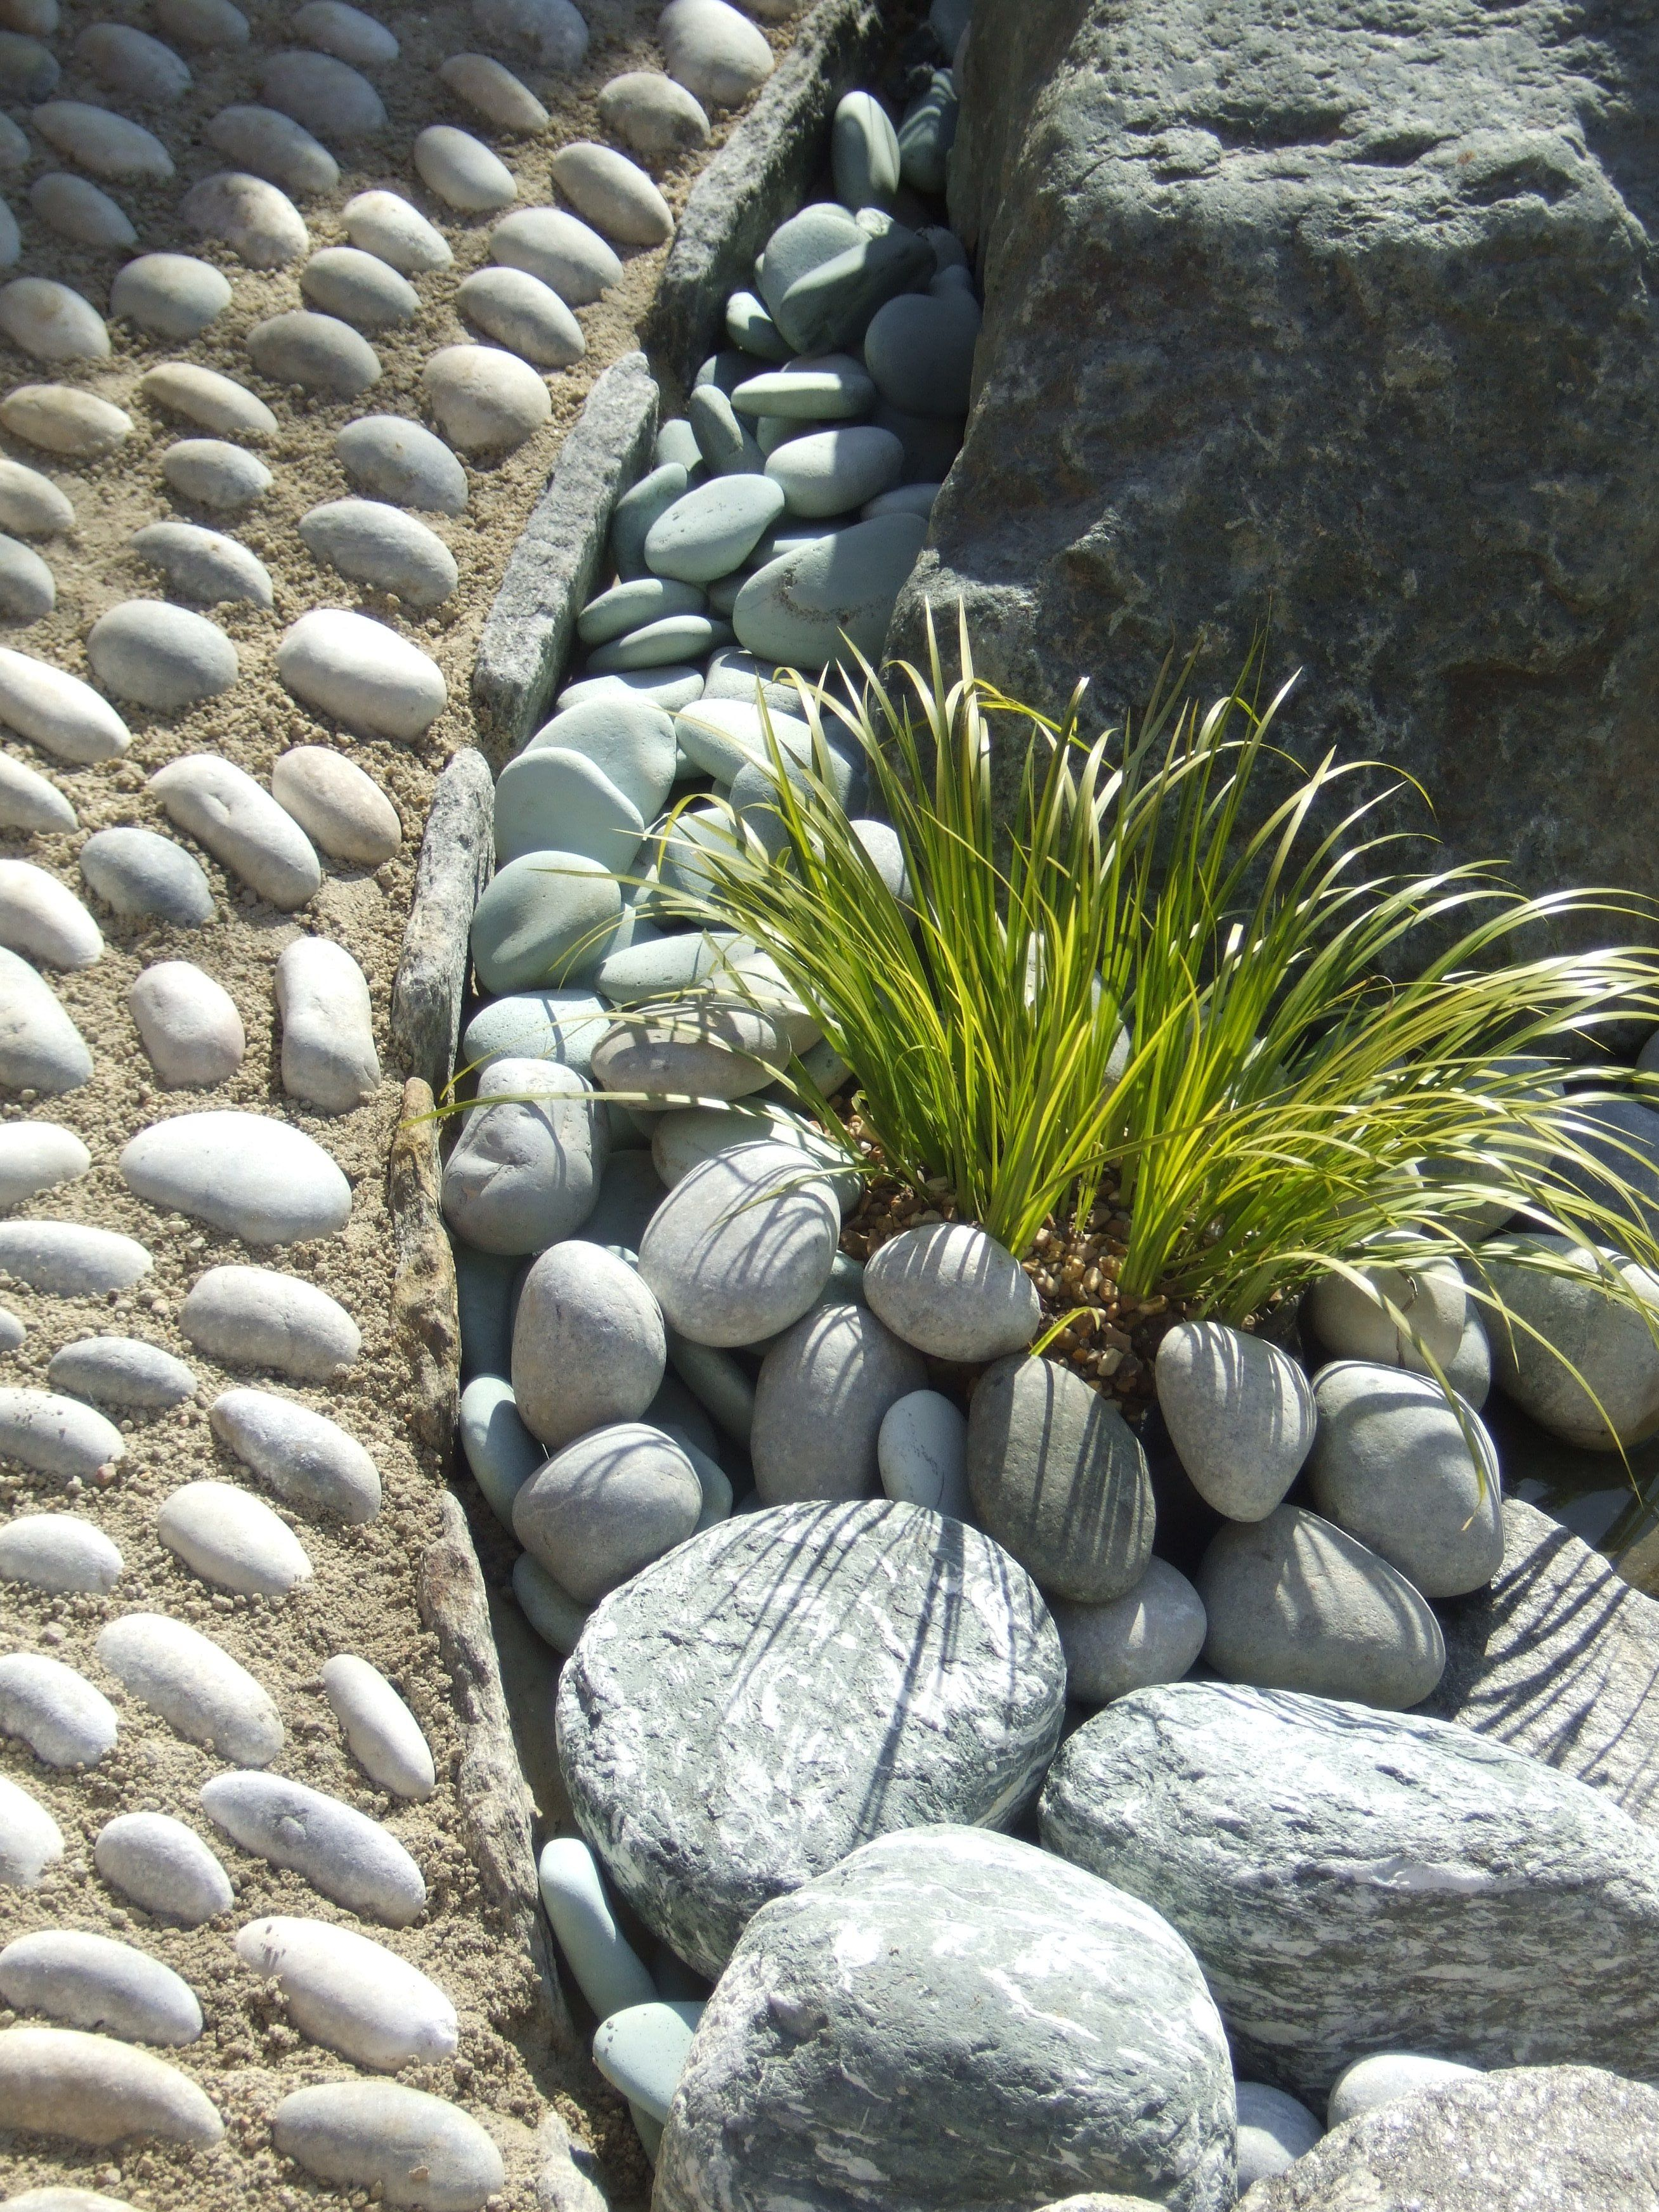 A pebble mosaic path at the margin of the pond.